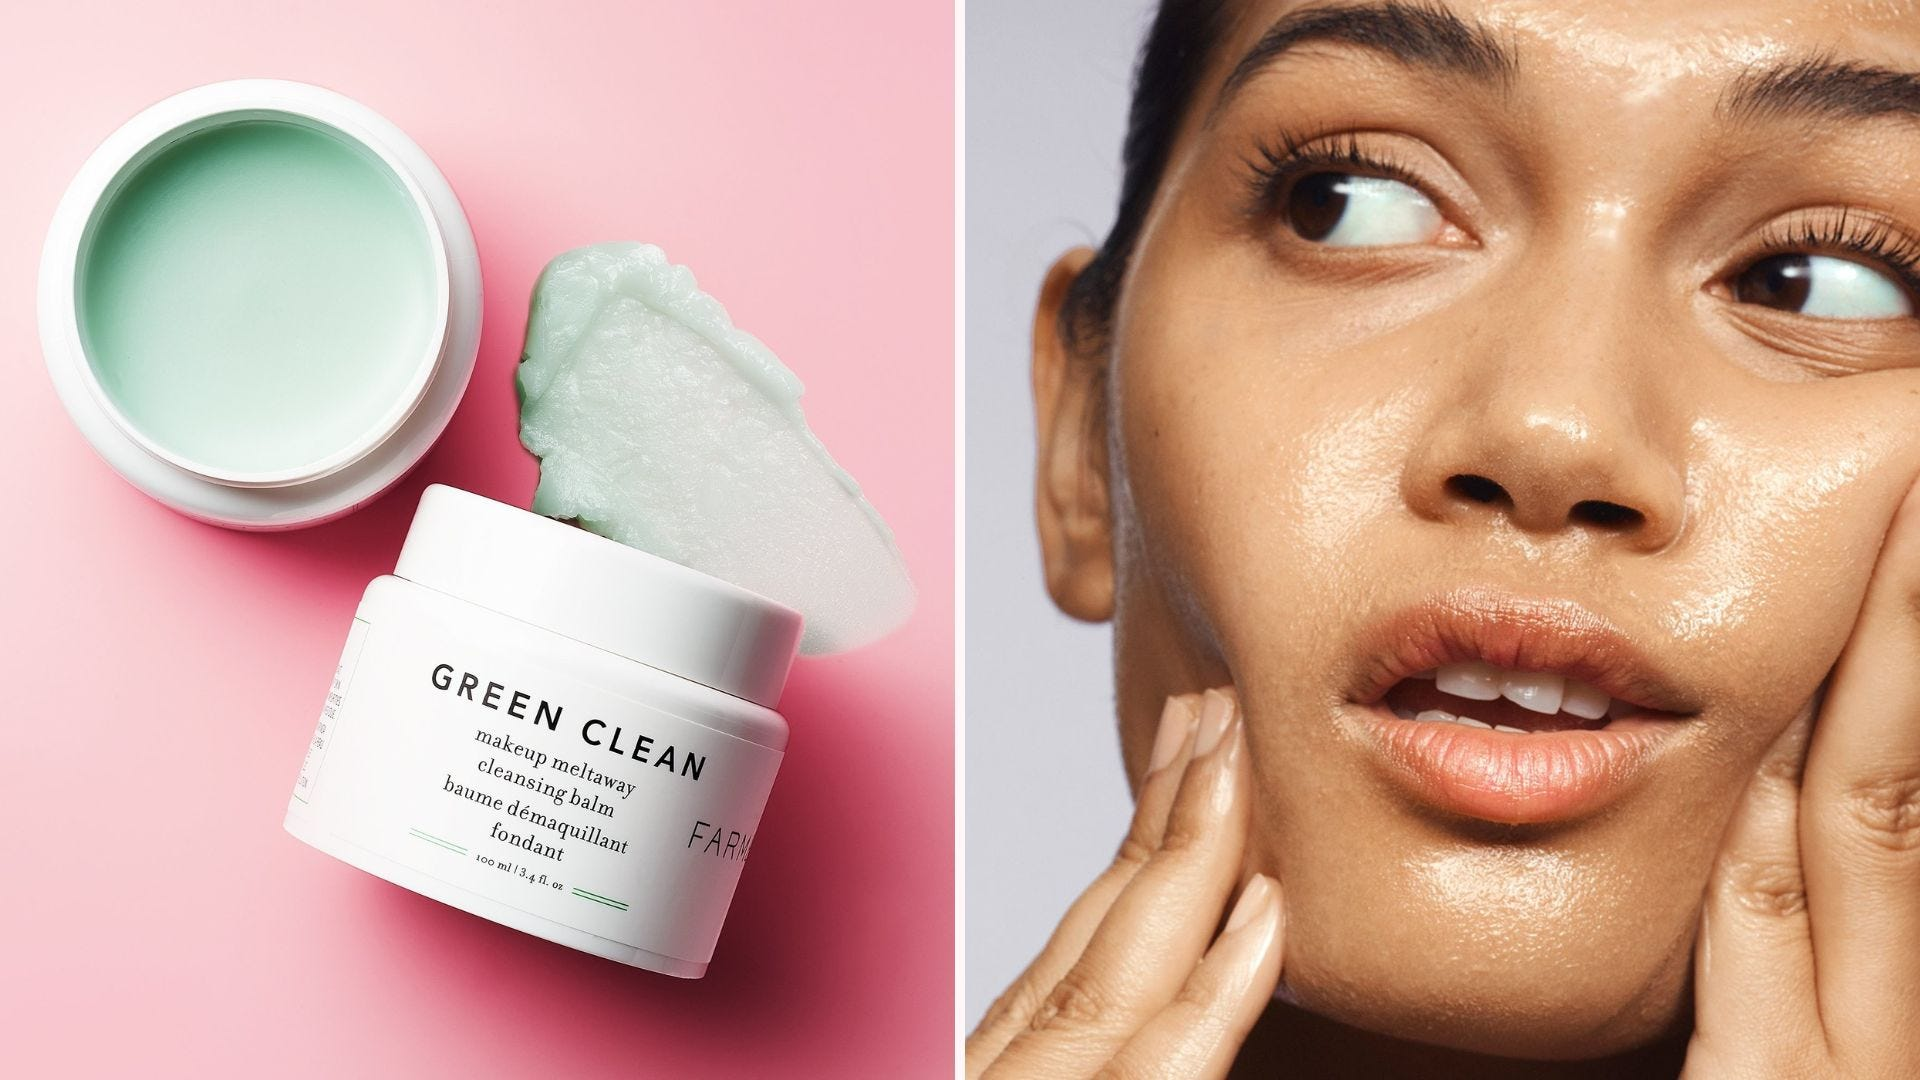 An open white jar with green cleansing balm; a woman's face with oily balm on it